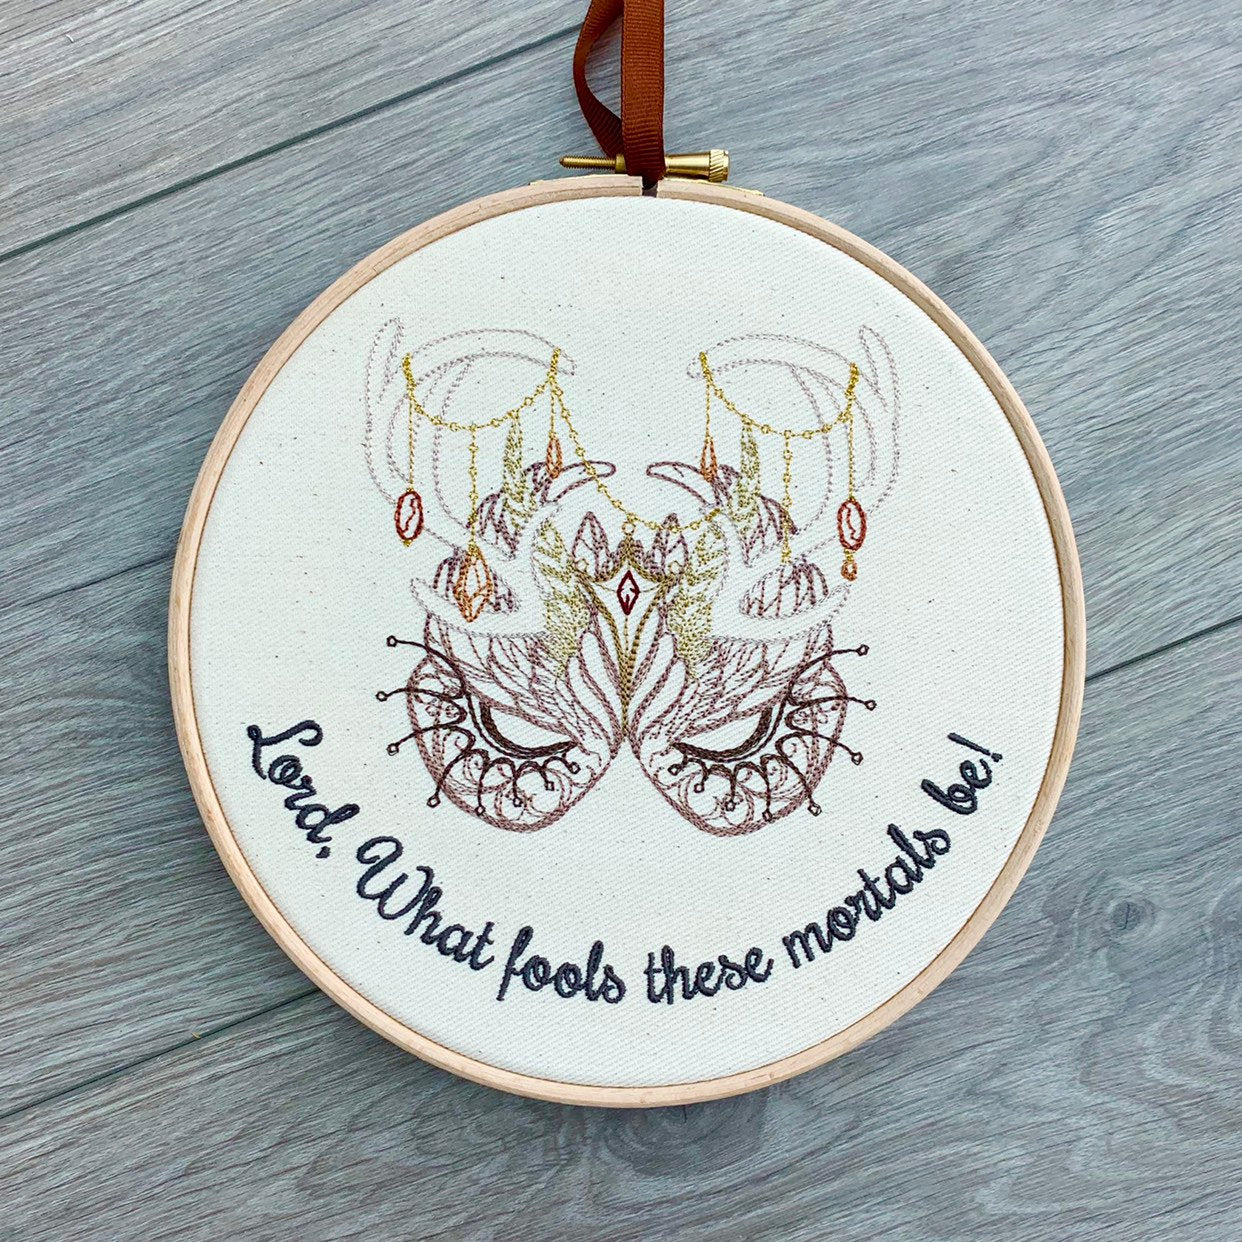 Lord what fools these morals be! embroidery hoop art William Shakespeare